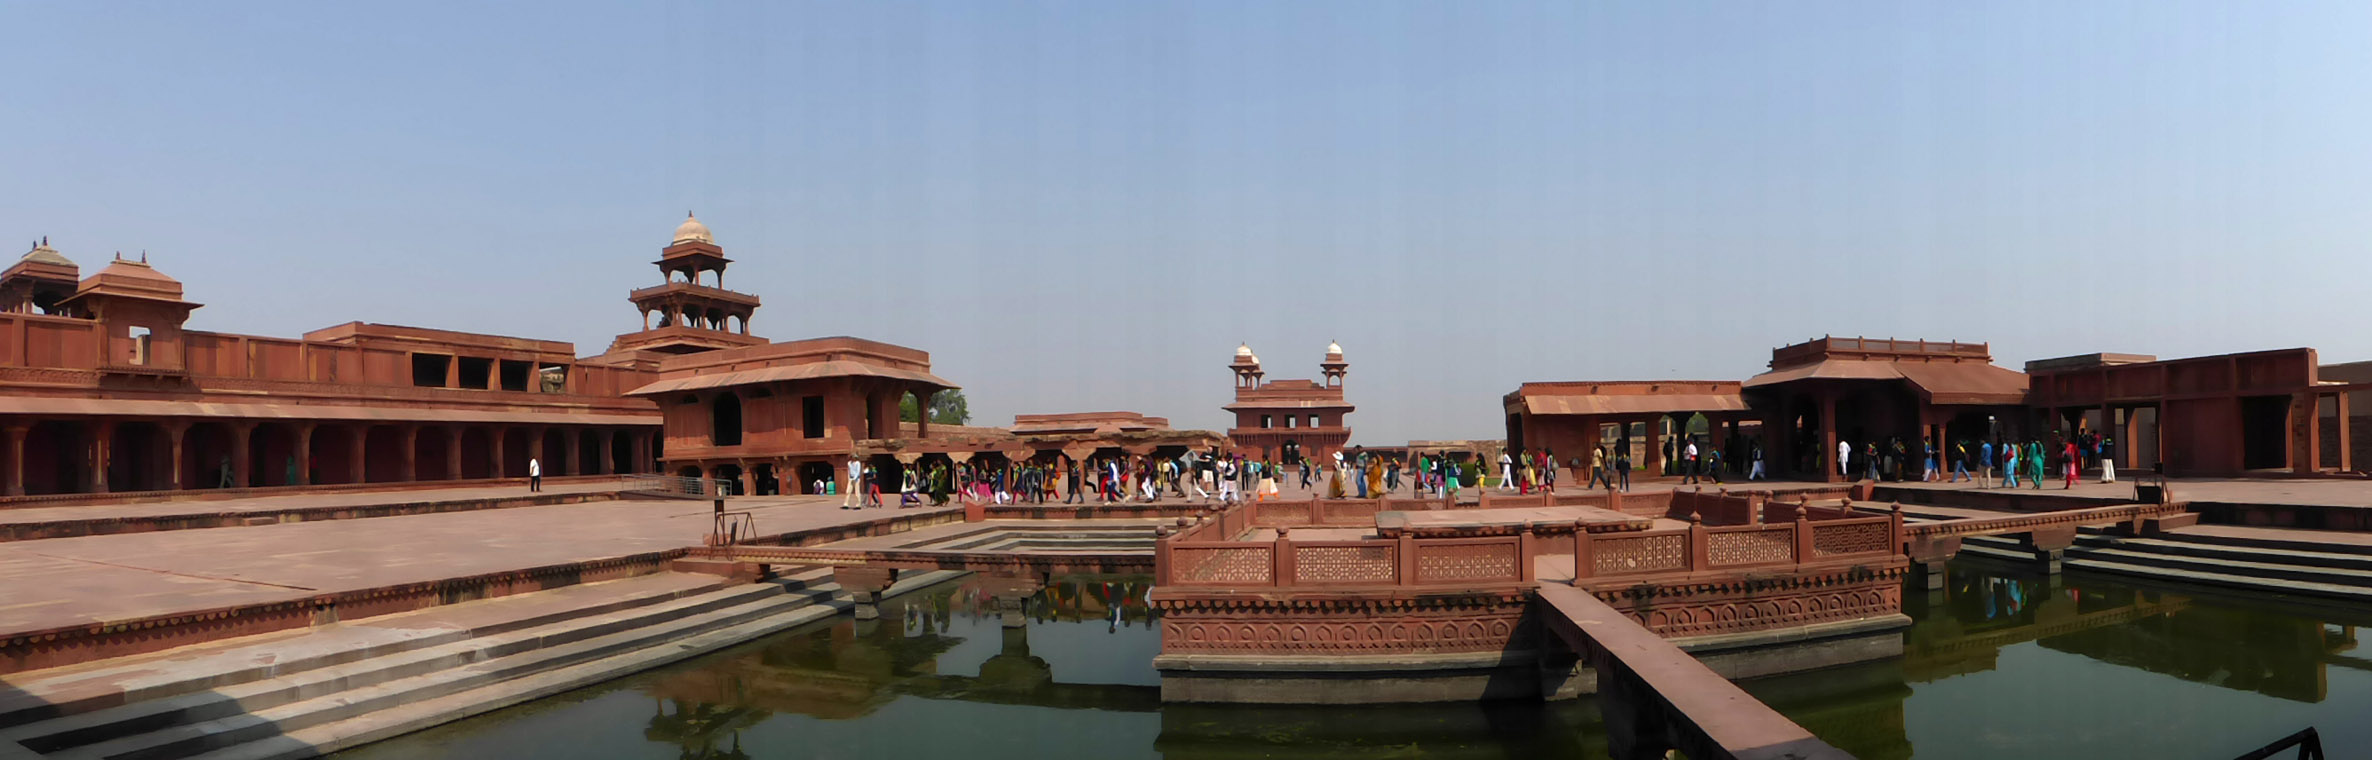 Red sandstone palace buildings and pool